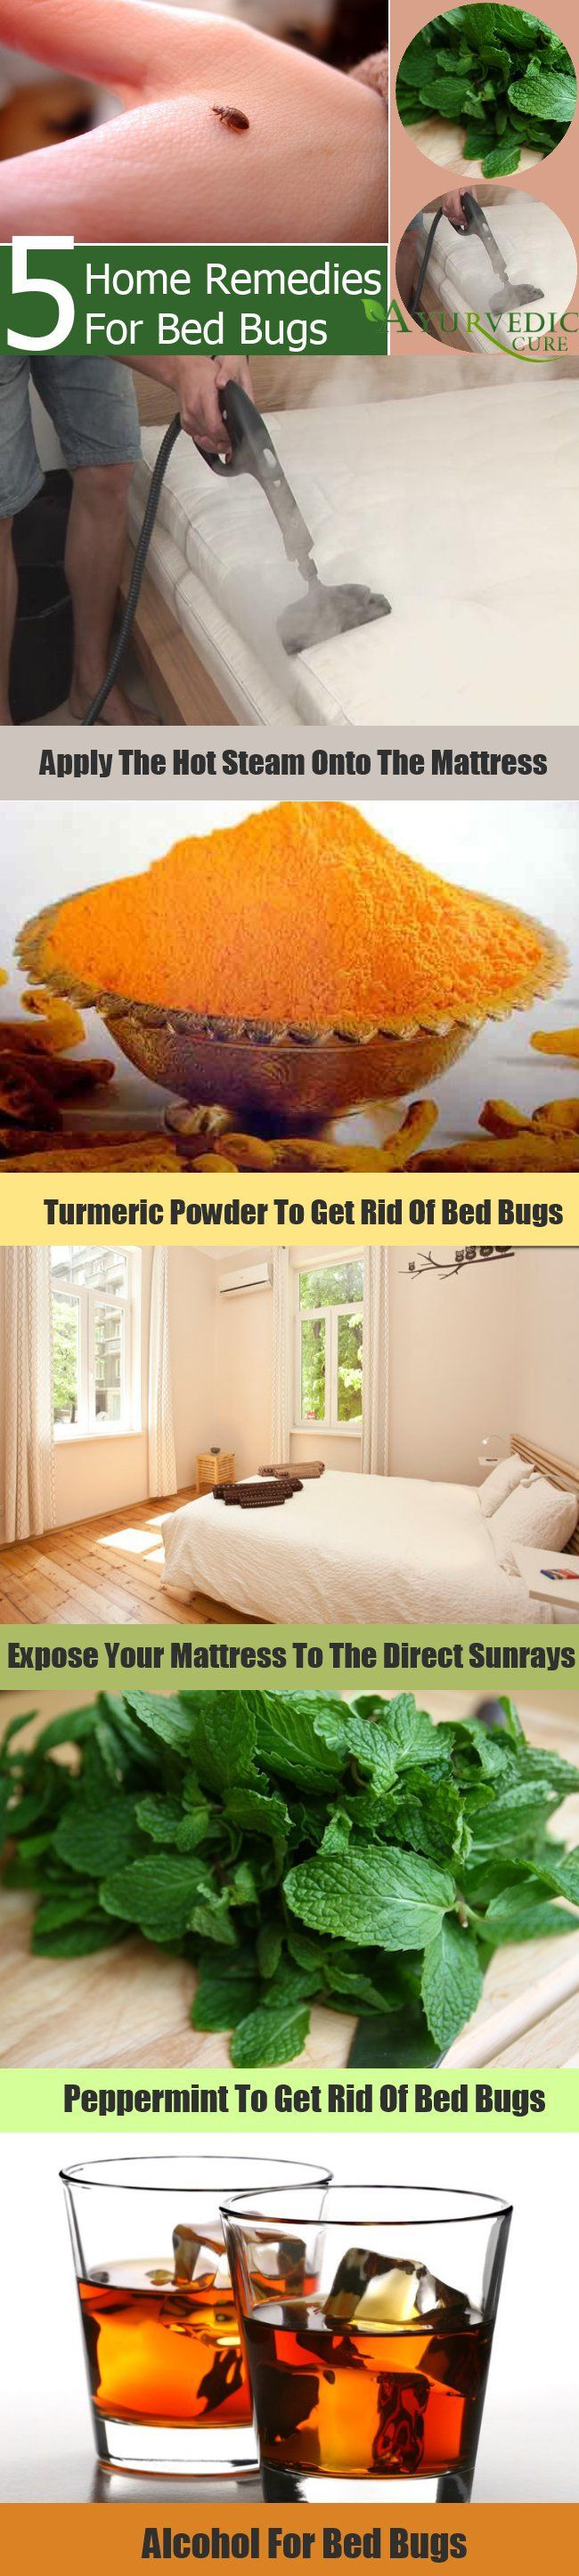 132 best bed bugs images on pinterest pest control bed bugs